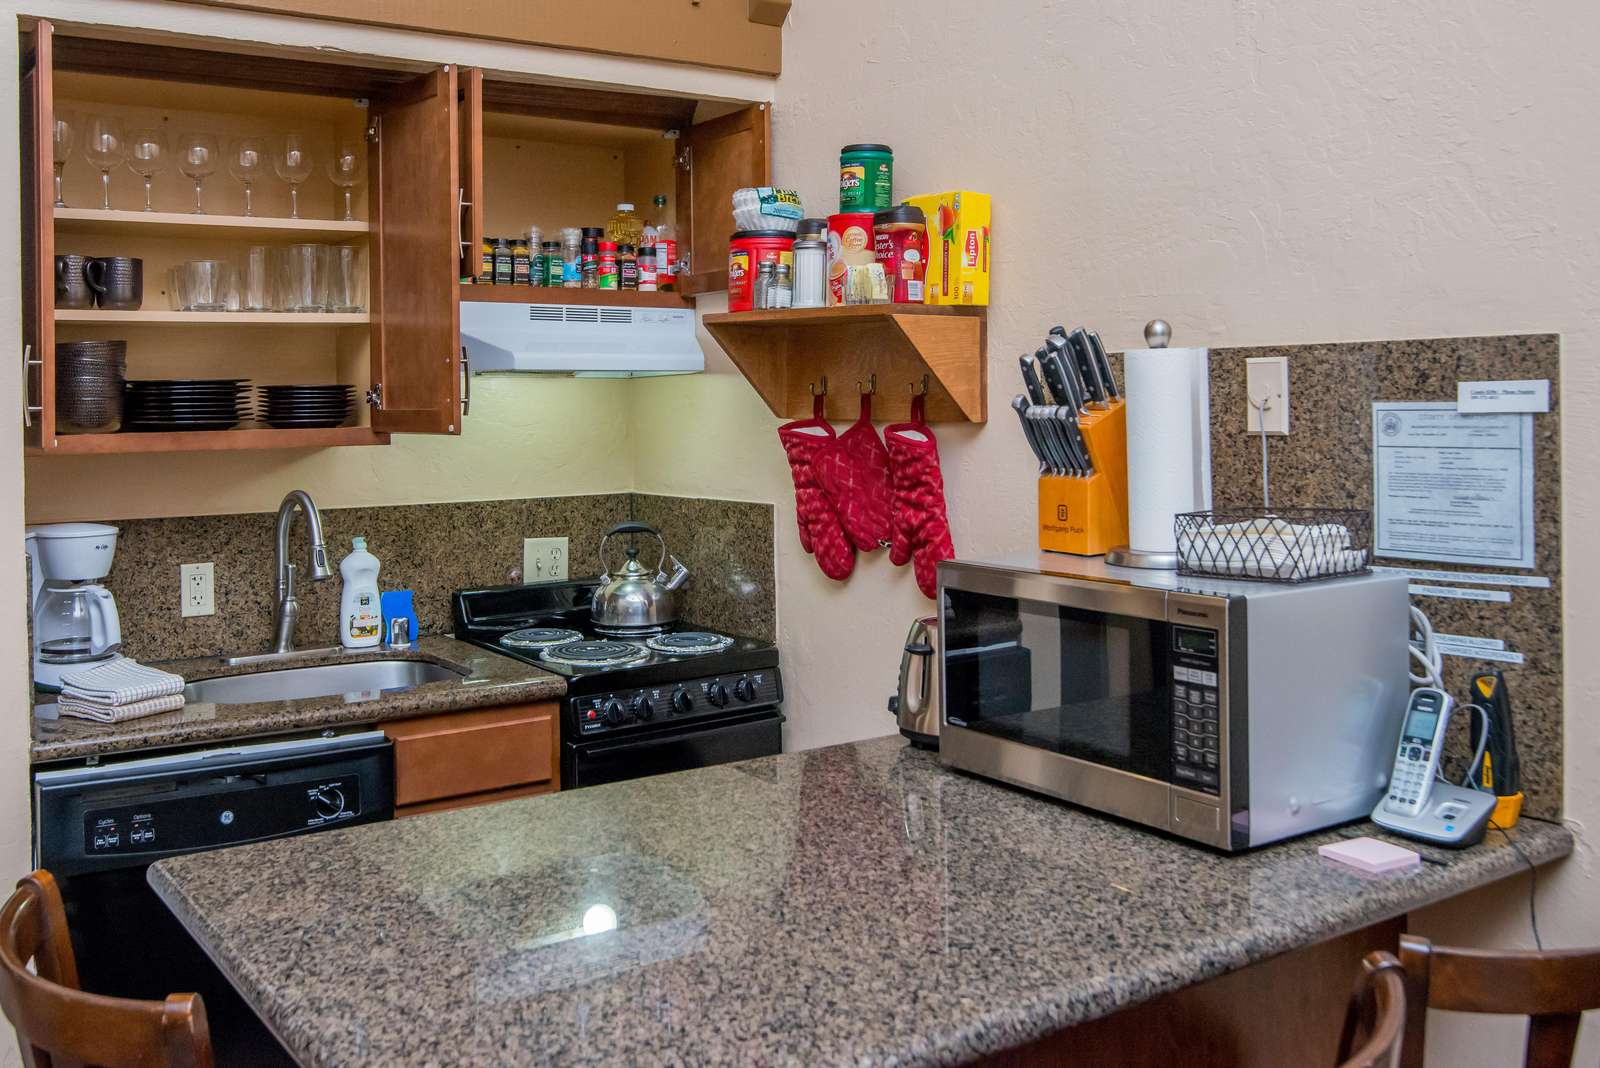 Cupboards are stocked with dishes and glasses.  Spices, coffees, cooking oil, utensils and plenty of other kitchen amenities provided for your comfort.